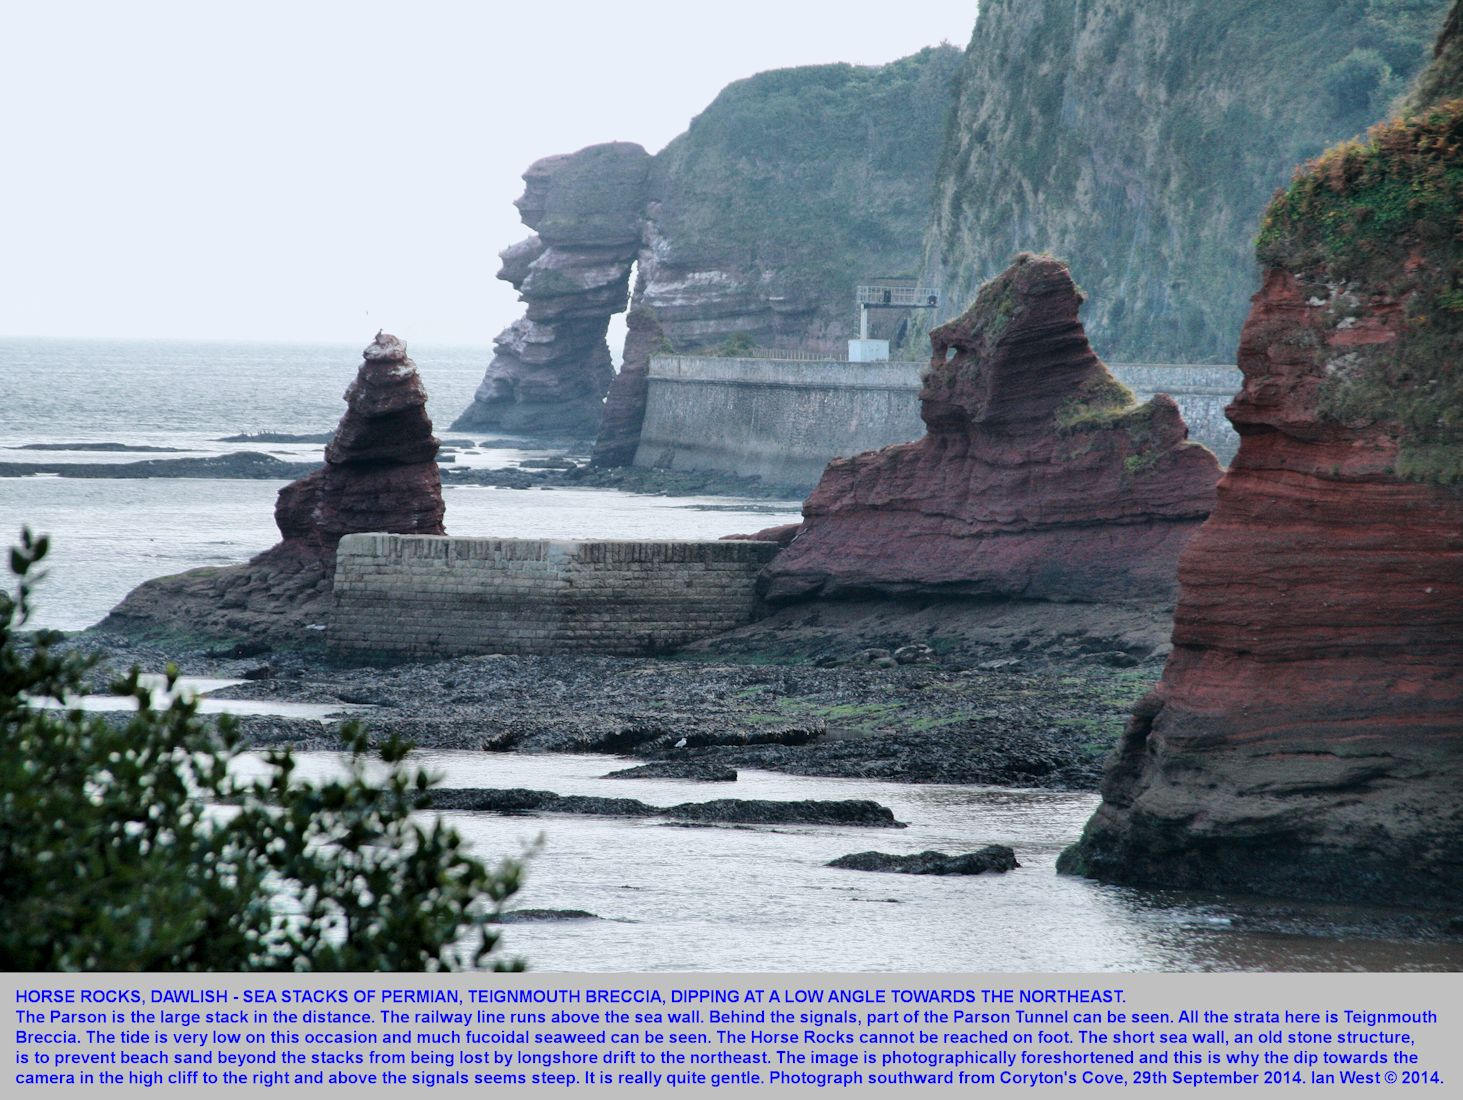 Horse Rocks, sea stacks of Permian, Teignmouth Breccia, dipping at a low angles, Dawlish, Devon, 29th September 2014